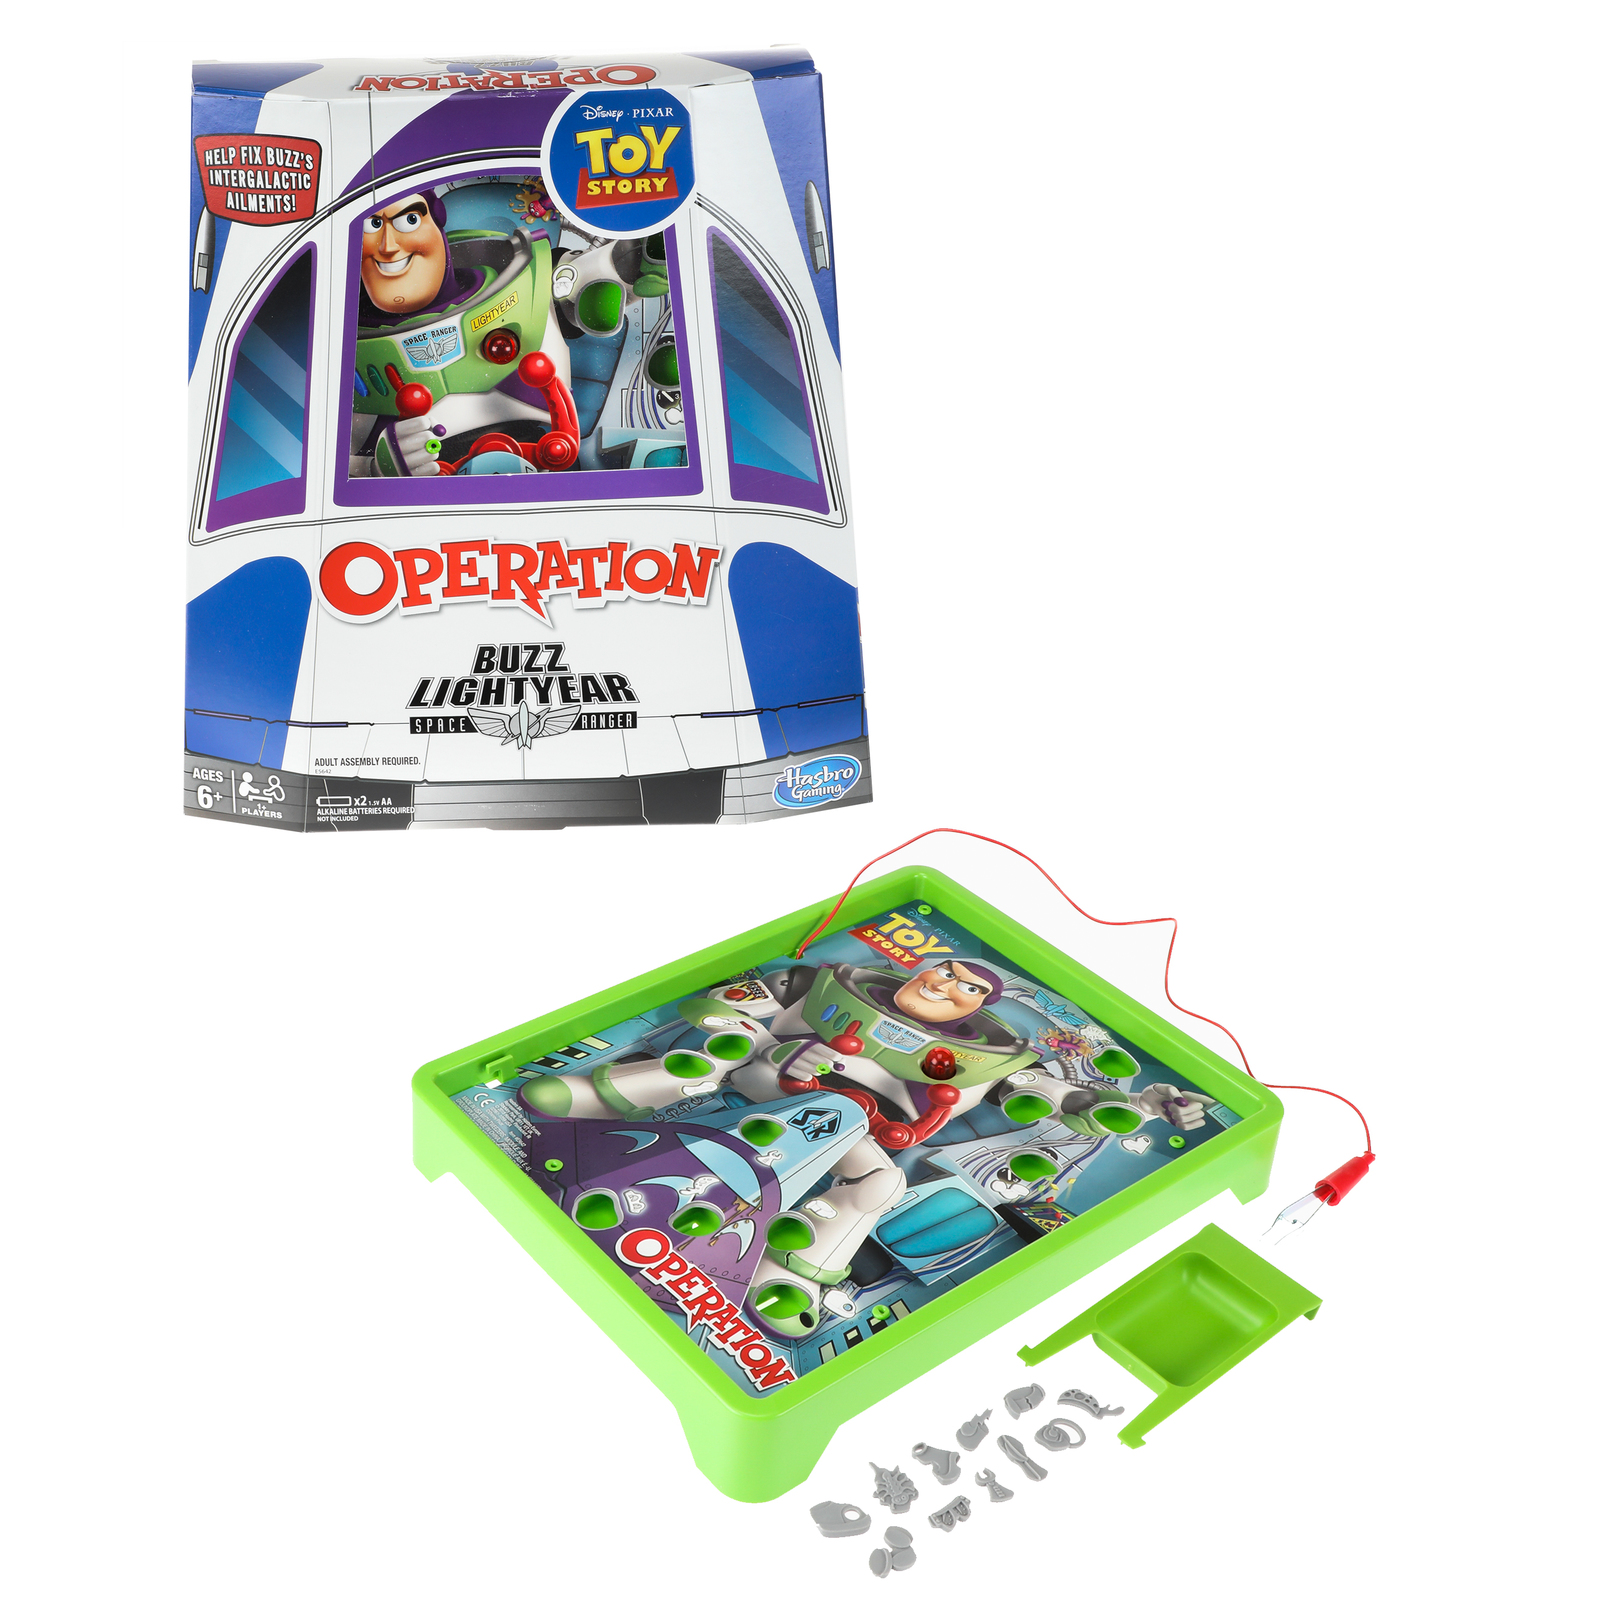 Toy Story: Buzz Lightyear - Operation Game image